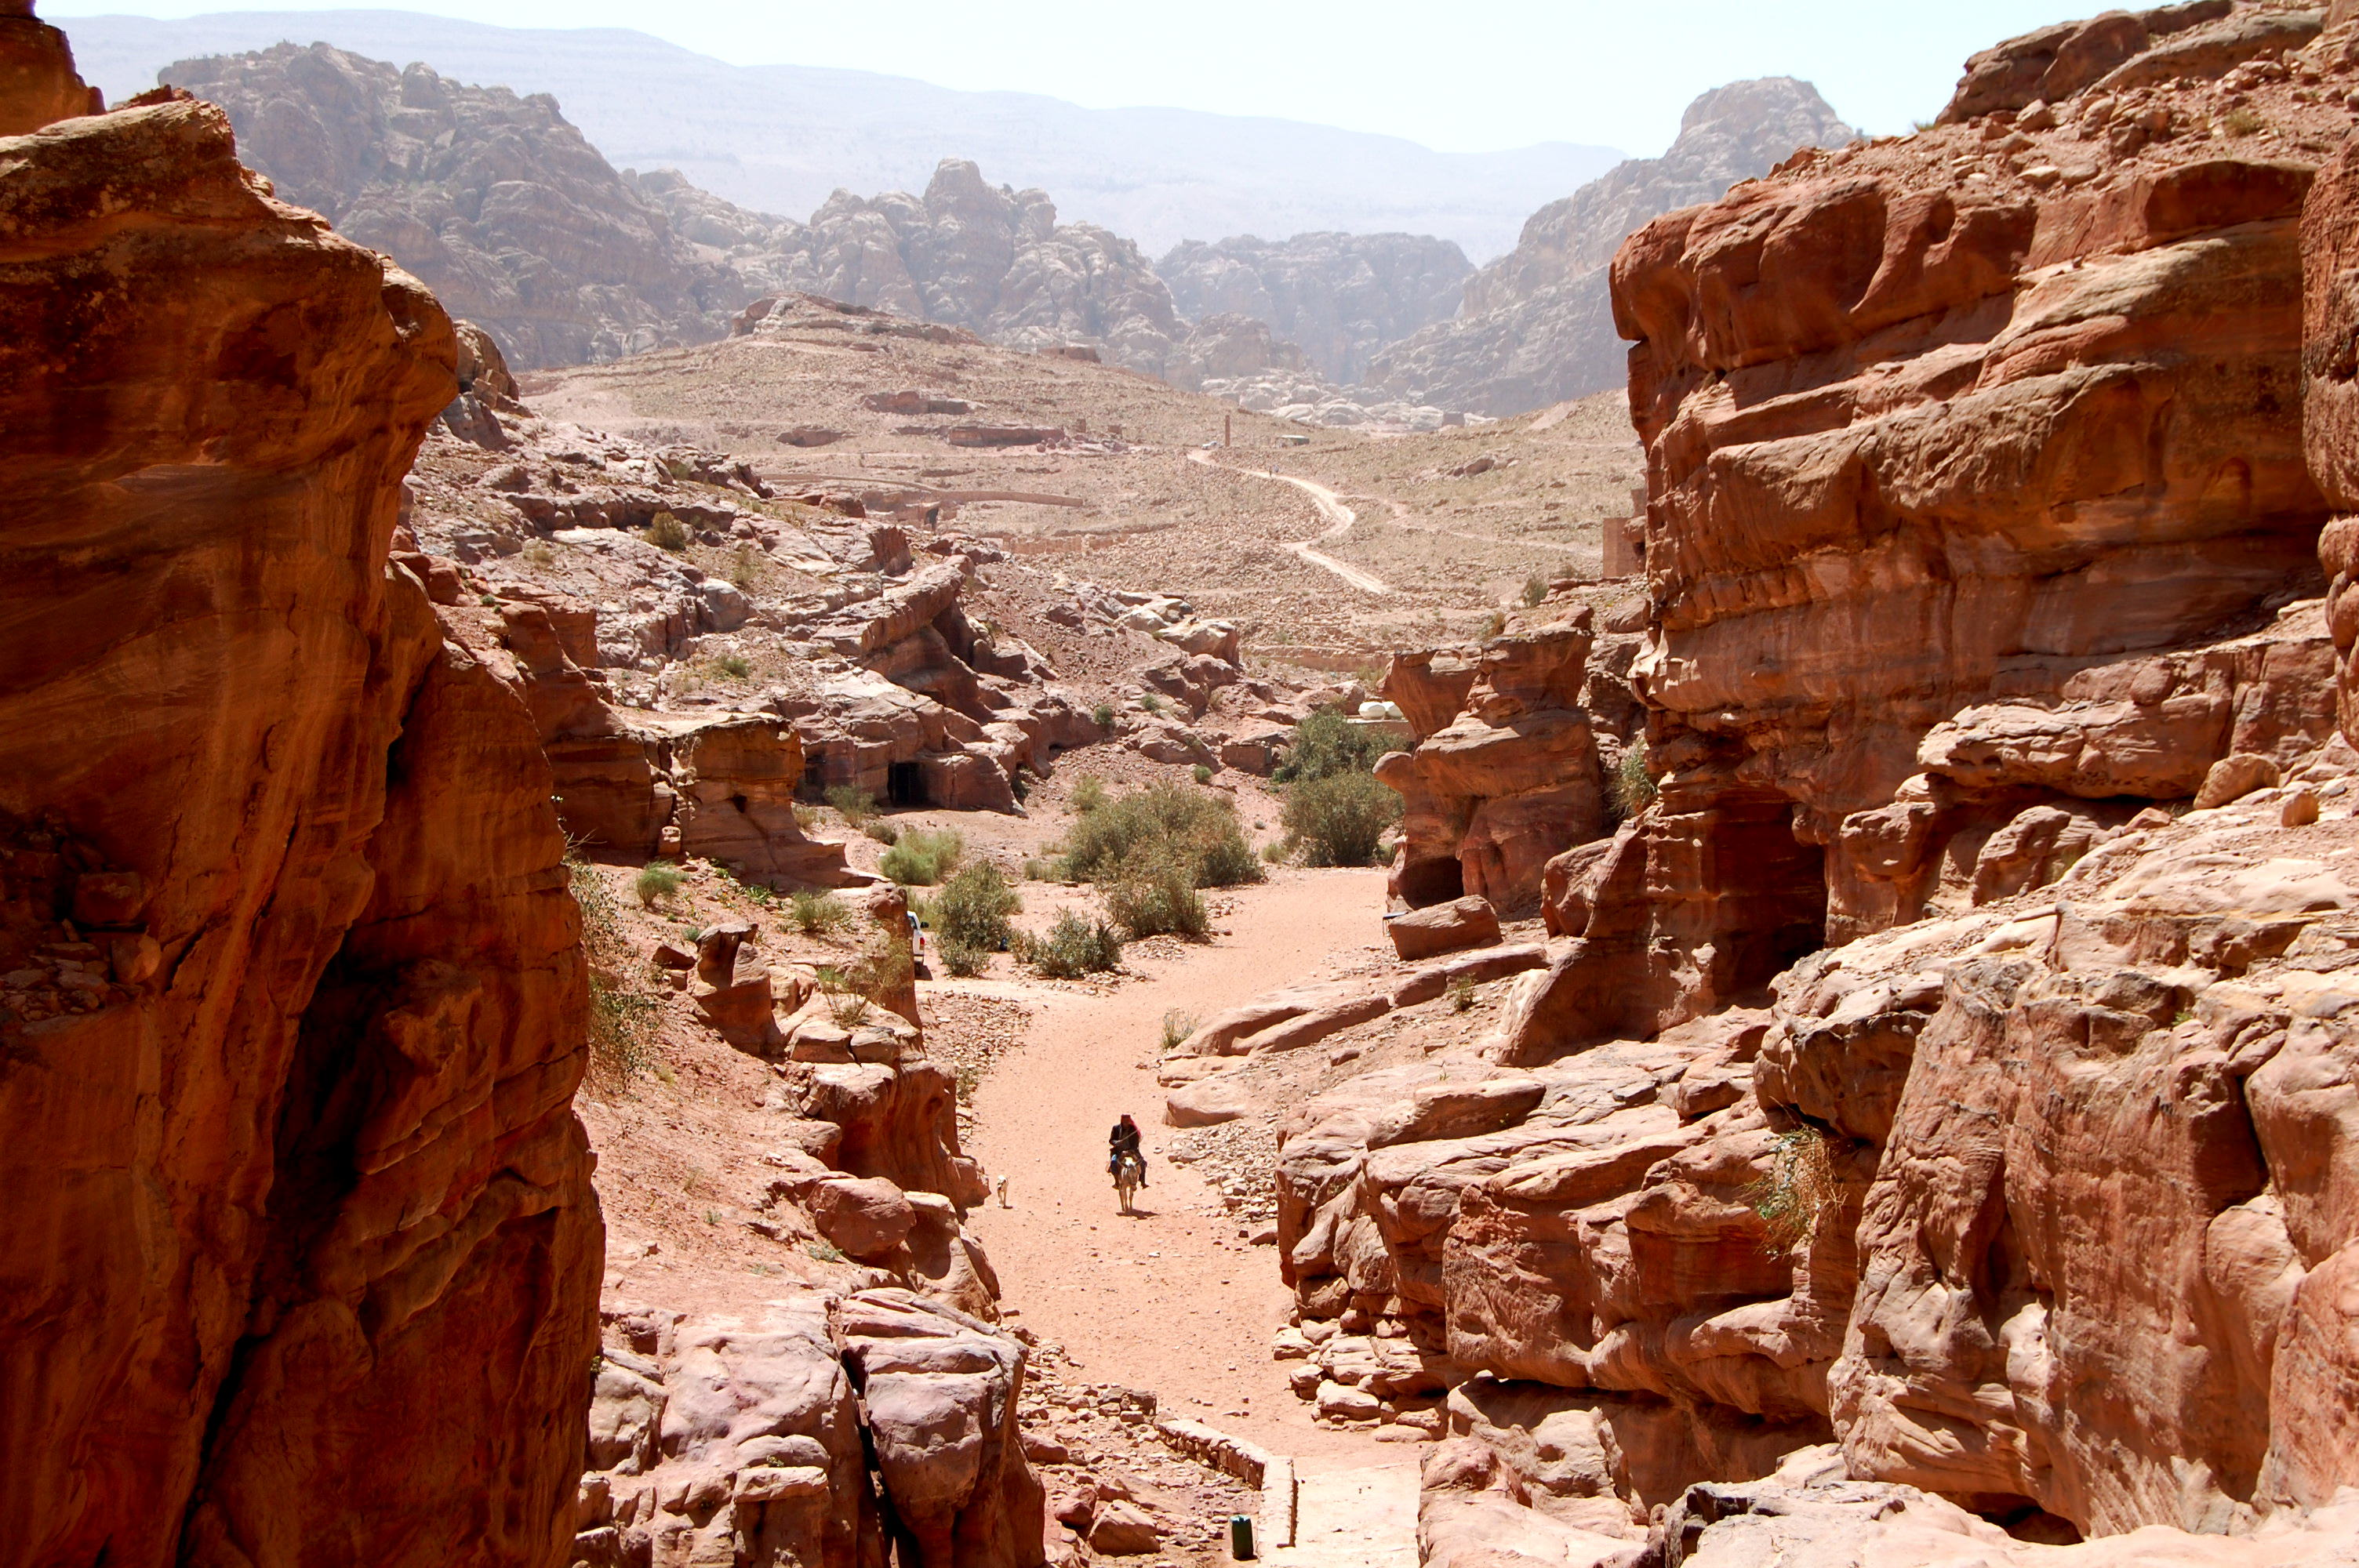 View of Petra from the Monastery